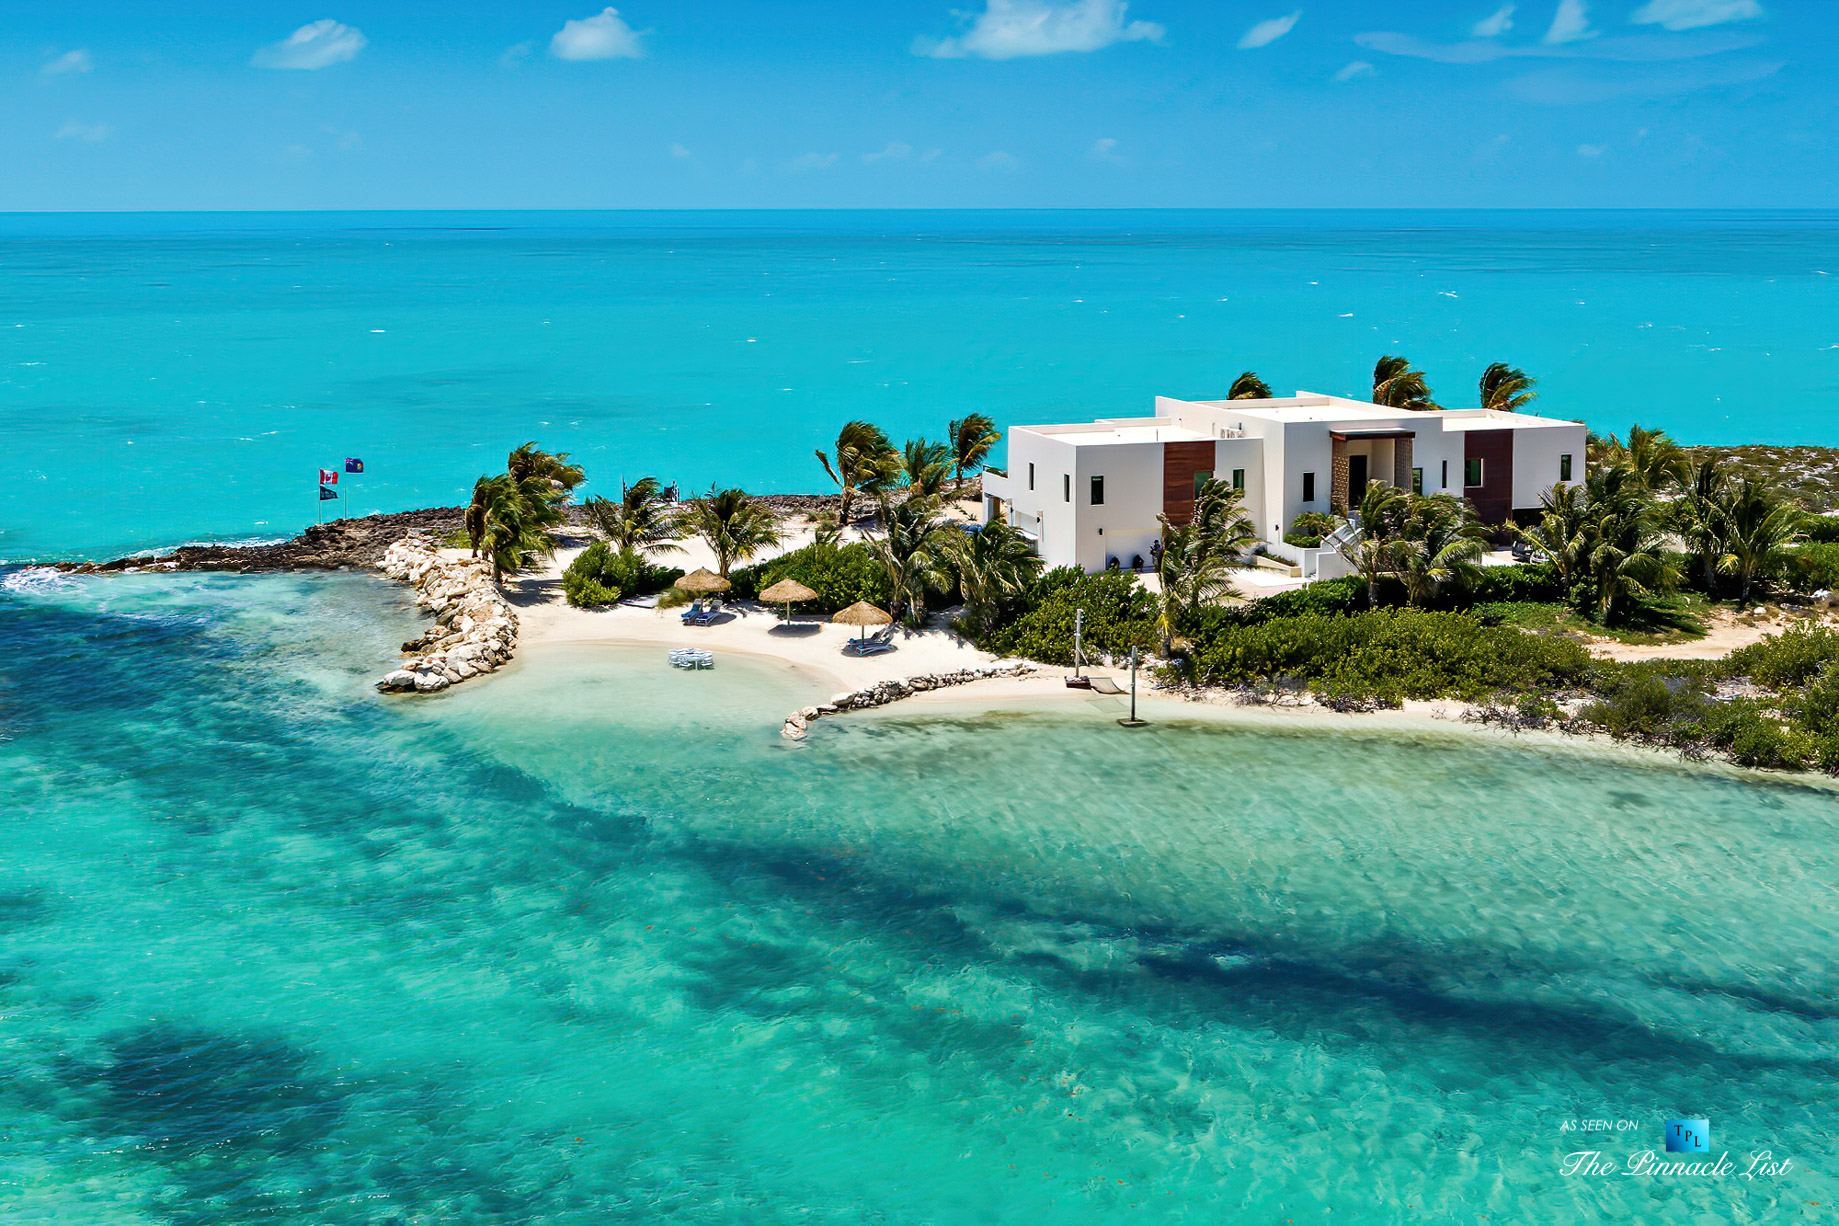 Tip of the Tail Luxury Villa – Providenciales, Turks and Caicos Islands – Property Aerial View